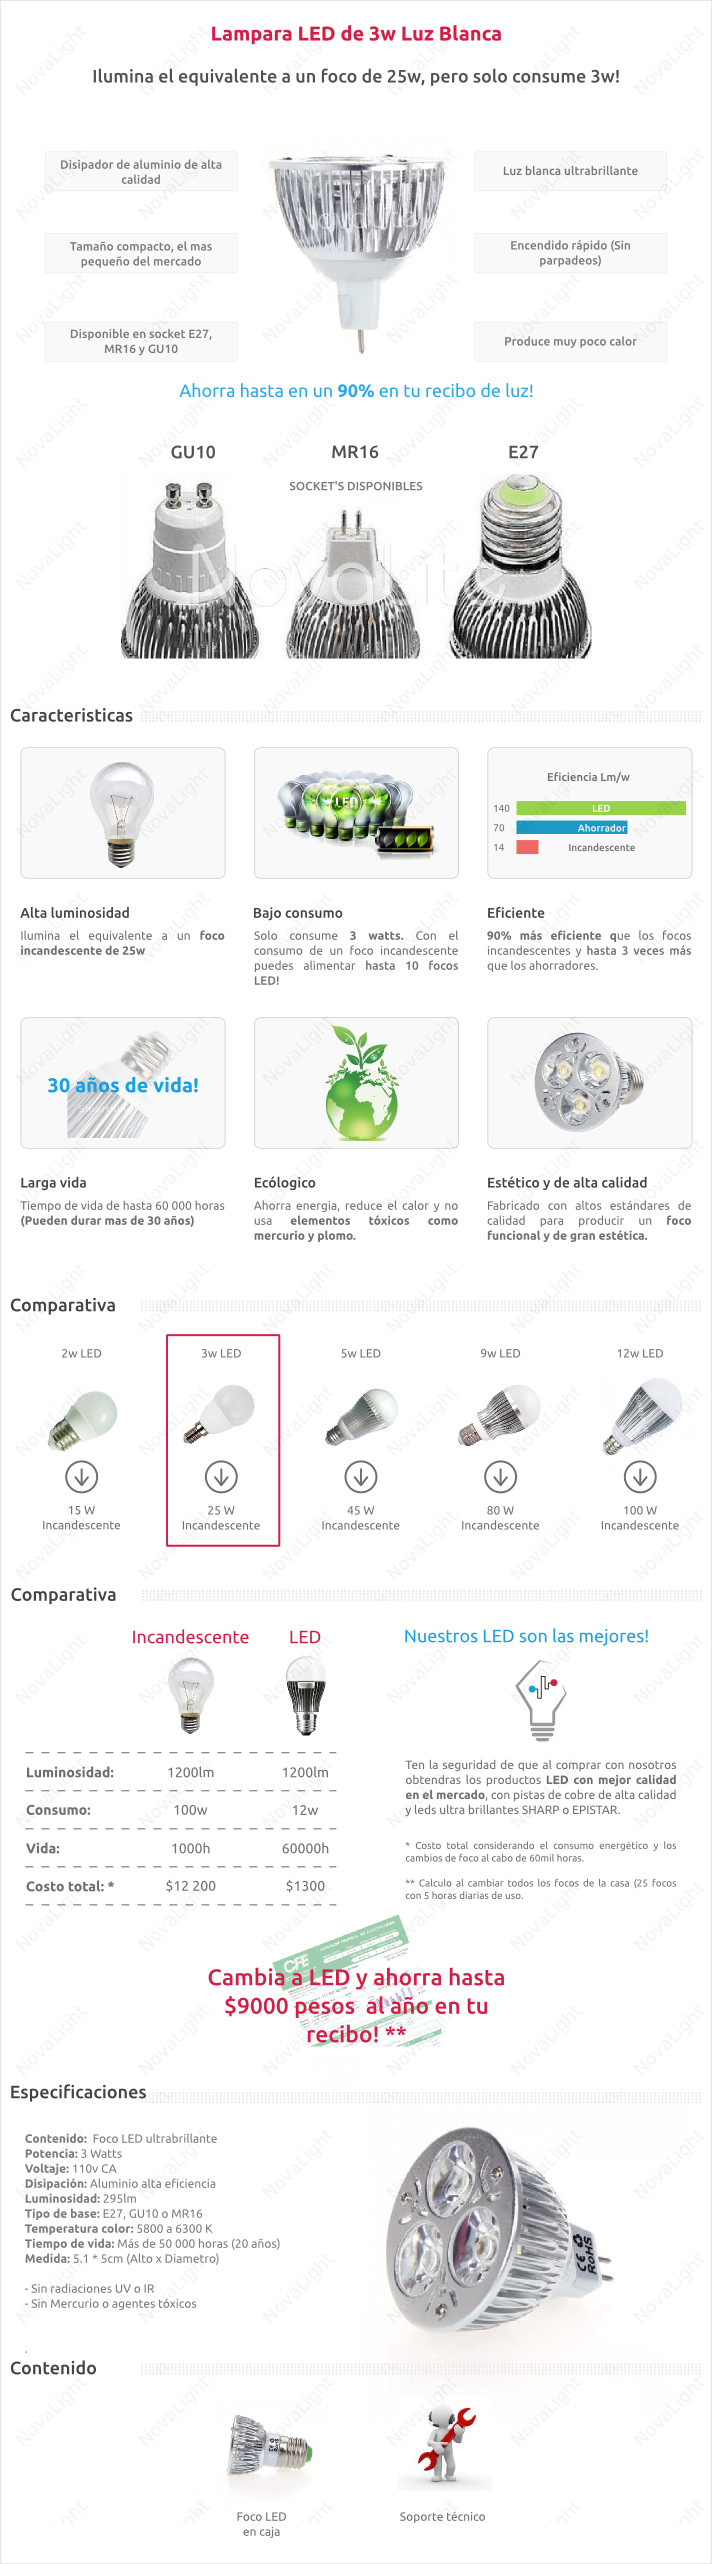 "Descripción de lampara LED tipo ""Spot"" 3w"